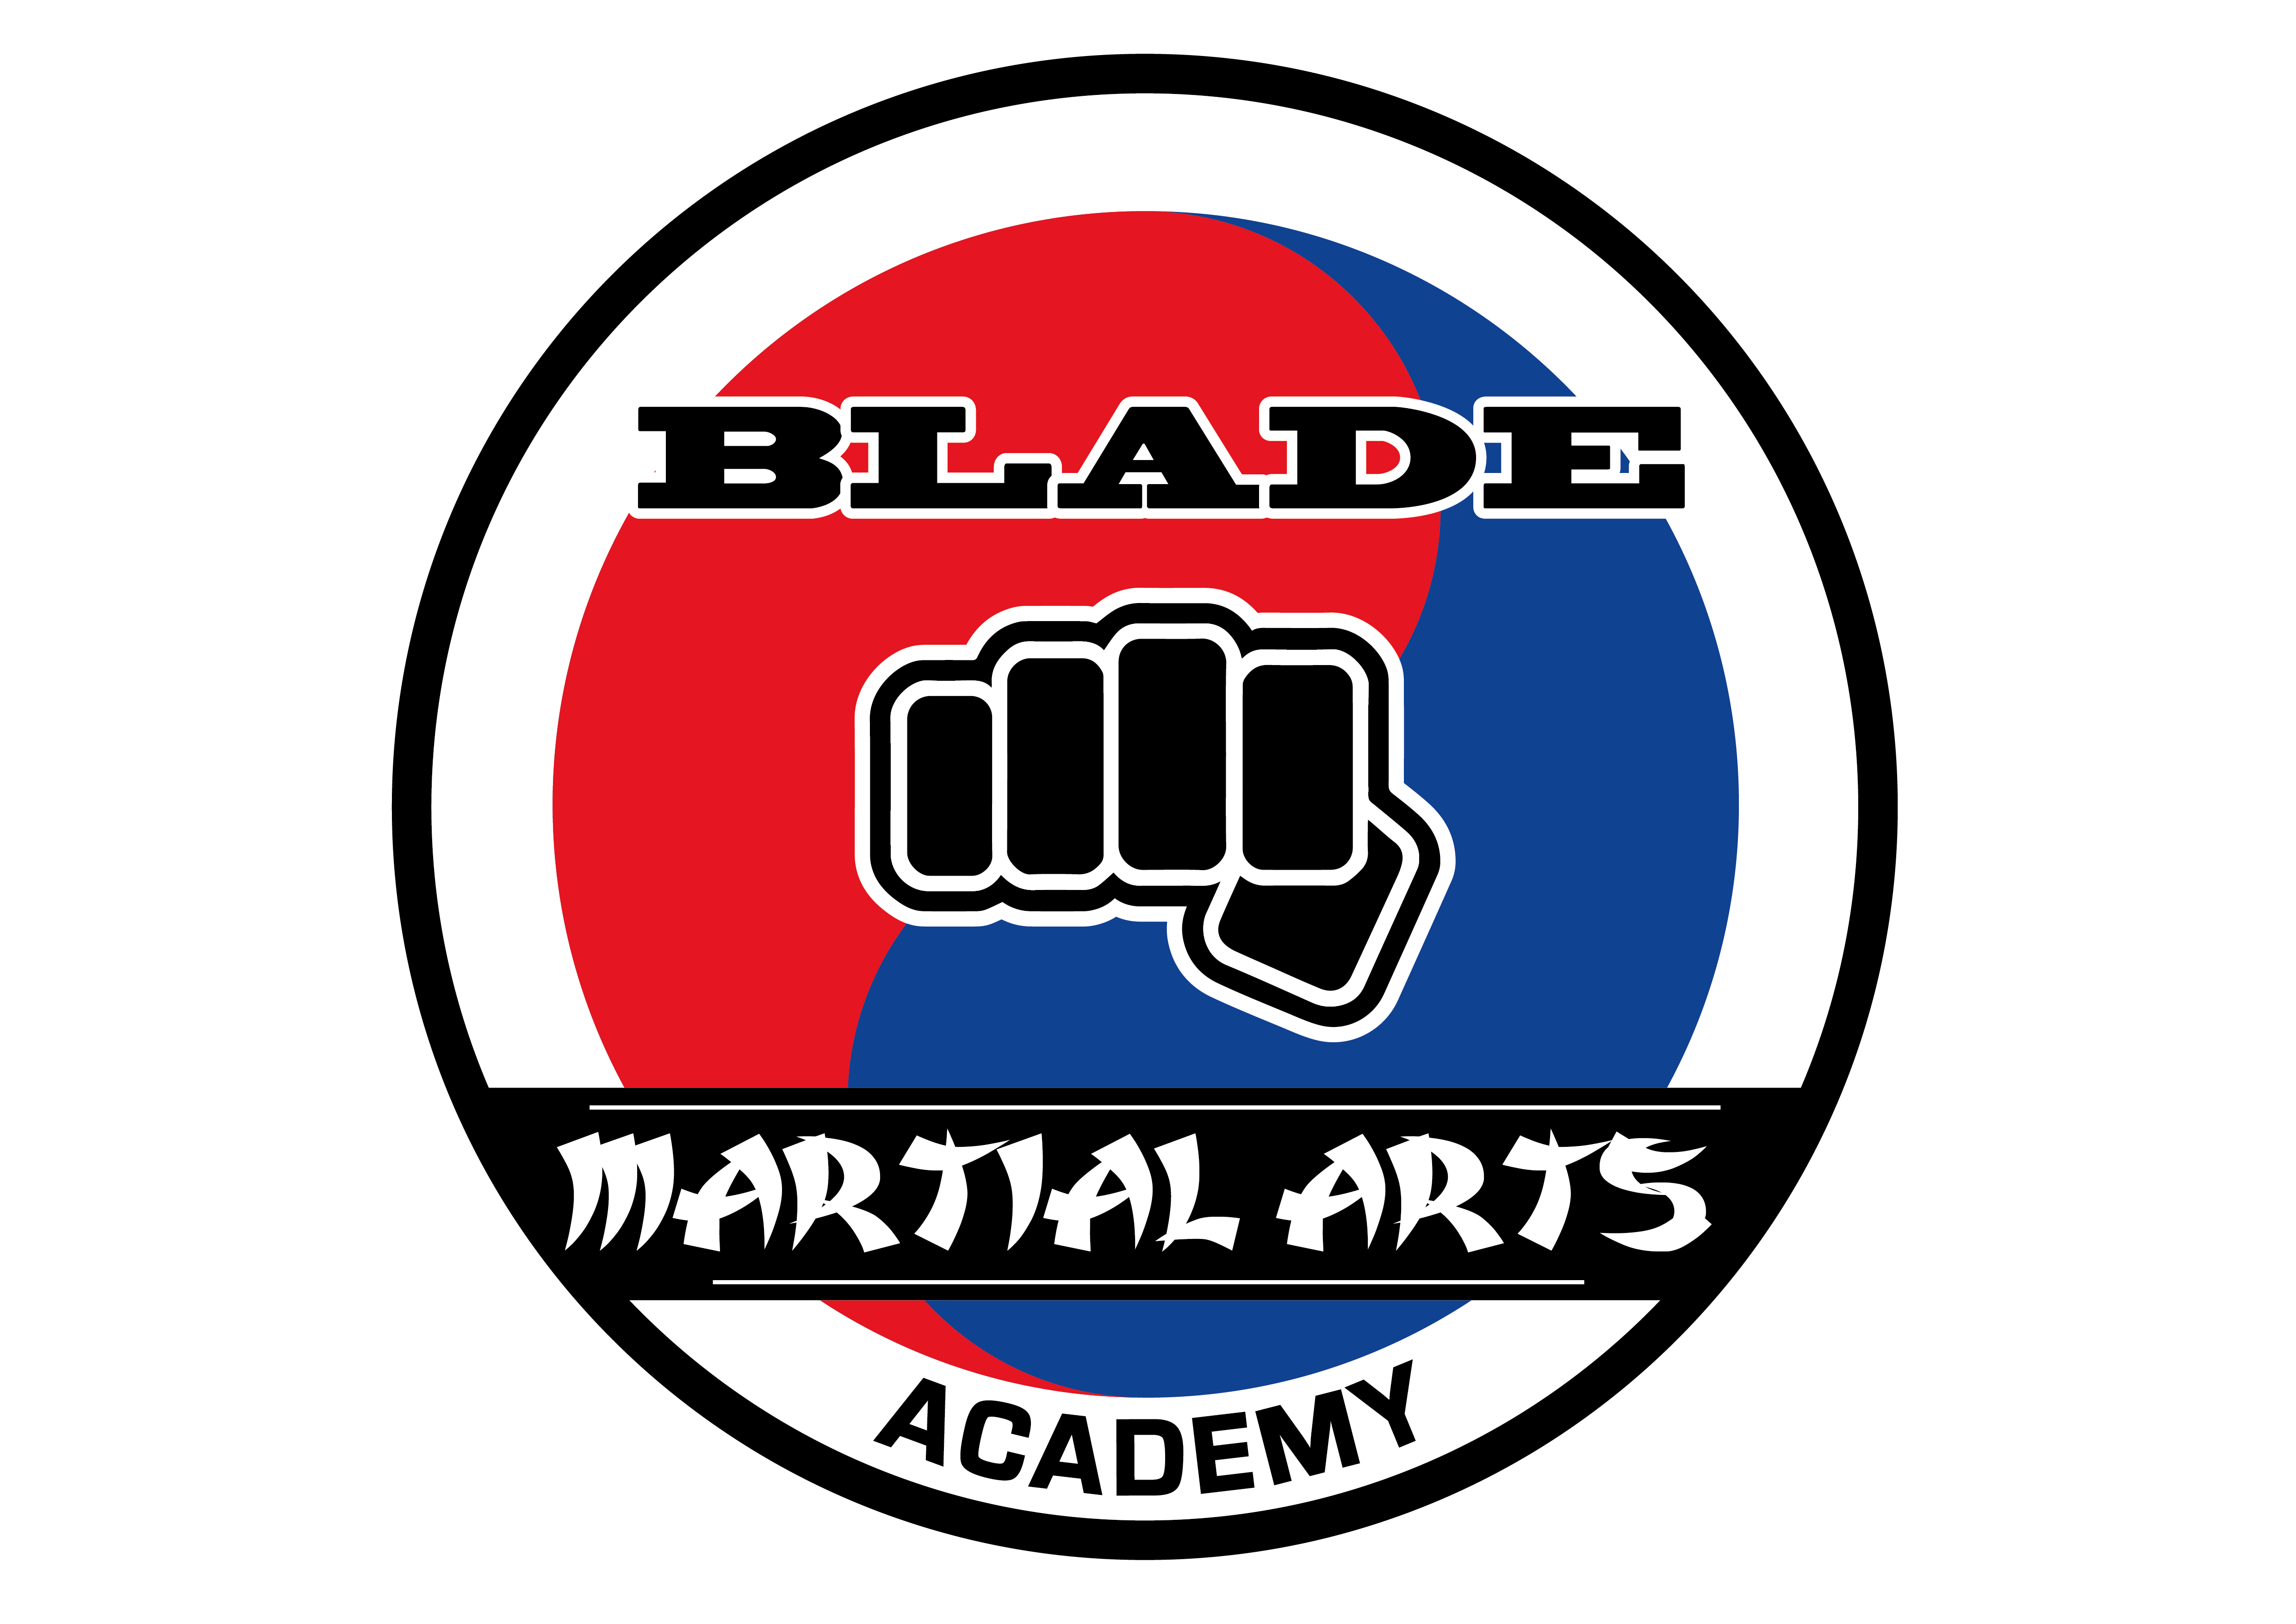 Blade Martial Arts Academy - Martial Arts Classes in Leeds